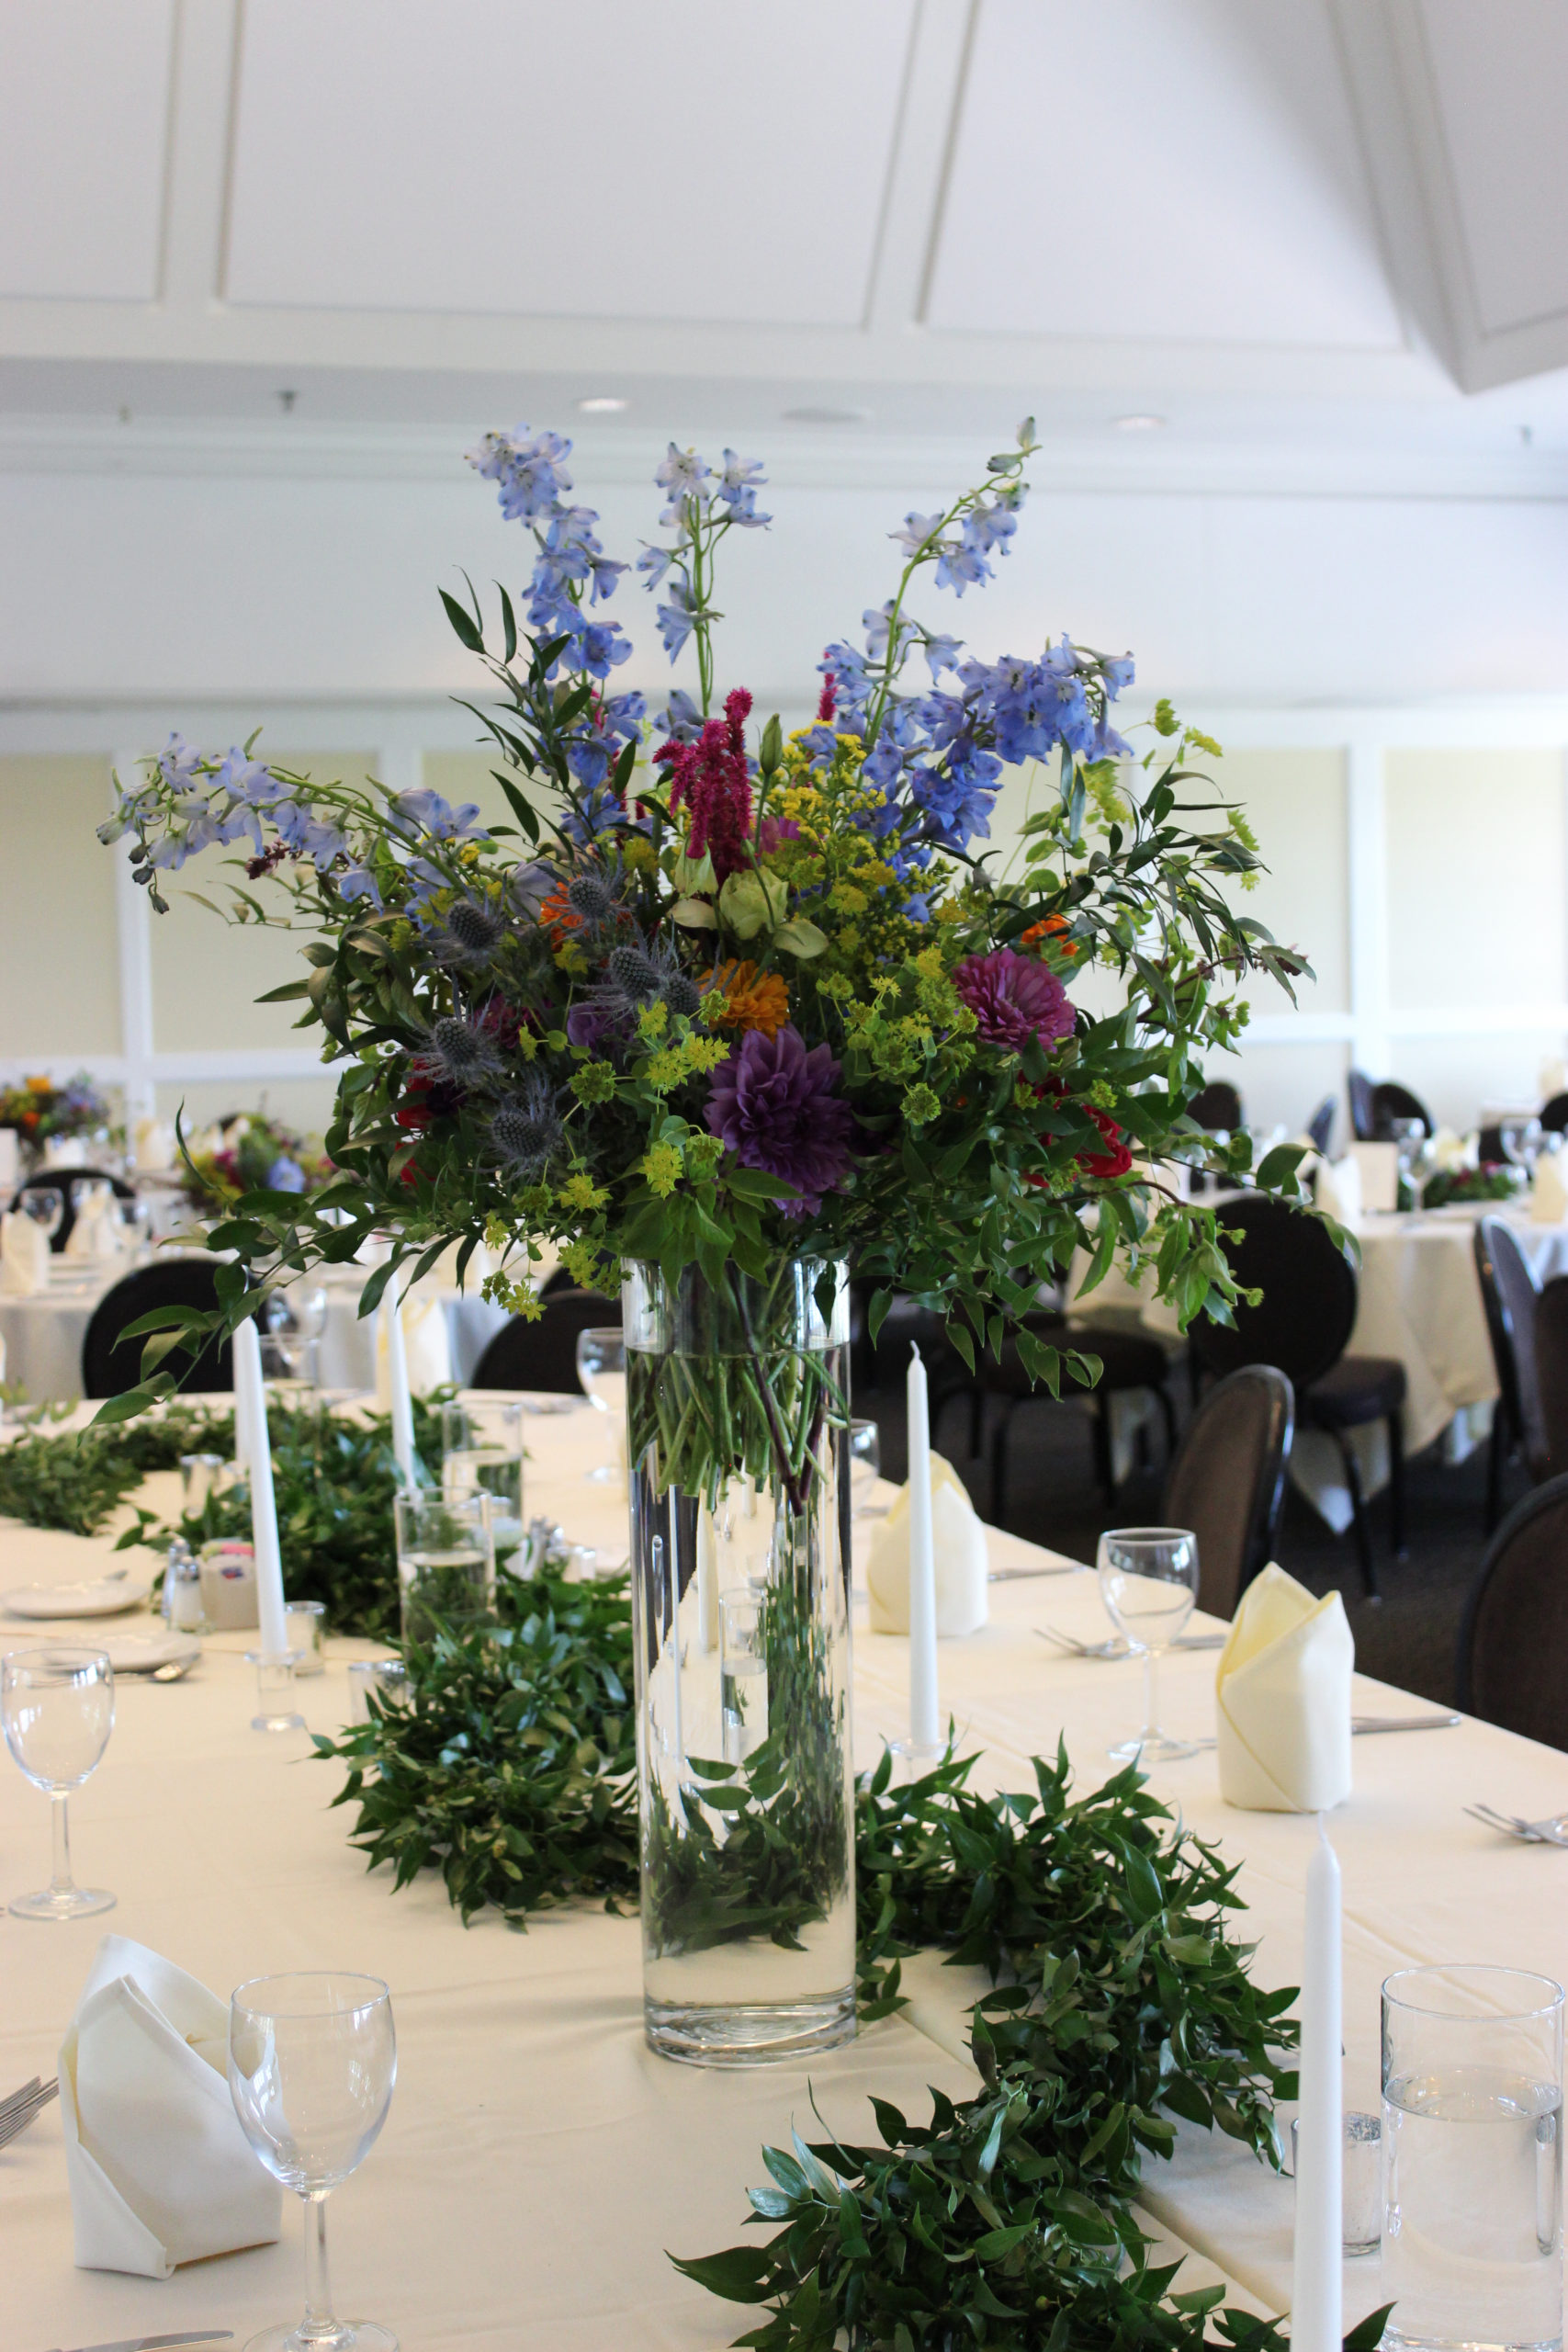 Head table decor for a wedding reception at Evansville Country Club, designed by Evansville florist, Emerald Design